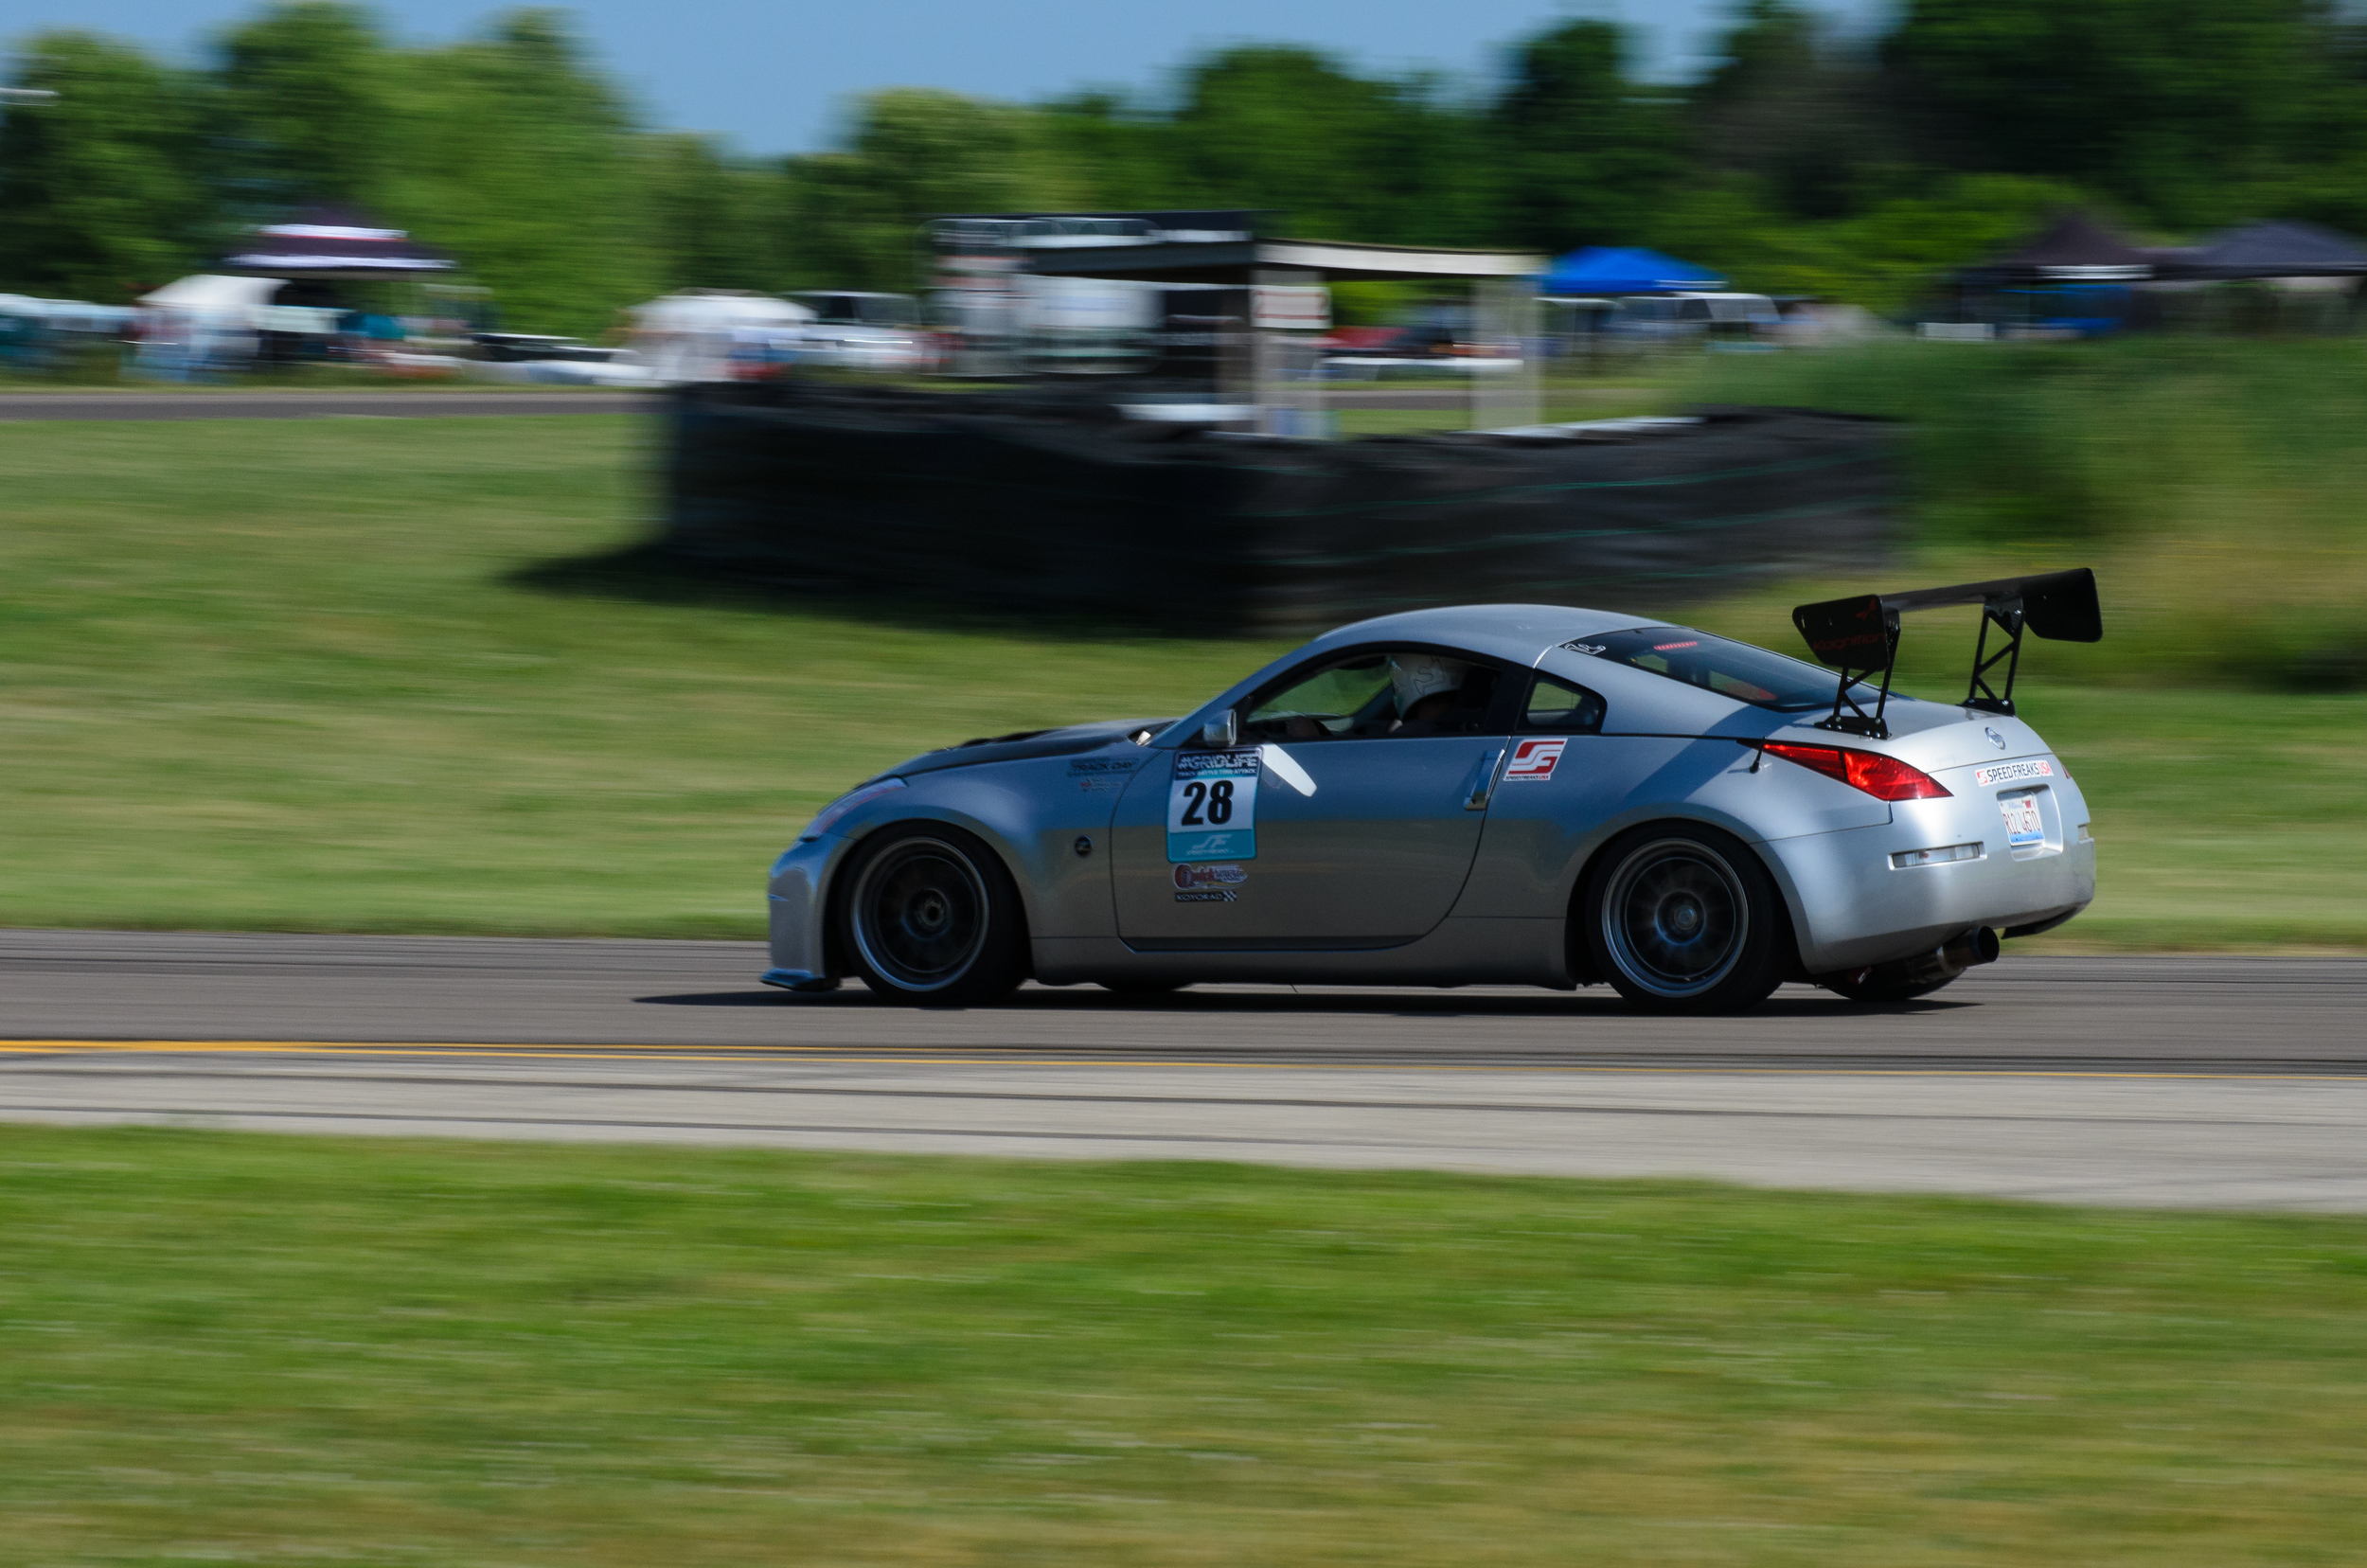 Josh rounds up our top 5 with an impressive time of 1:42.257 in his turbocharged 350Z. Its all in the wing, We keep telling you guys this!